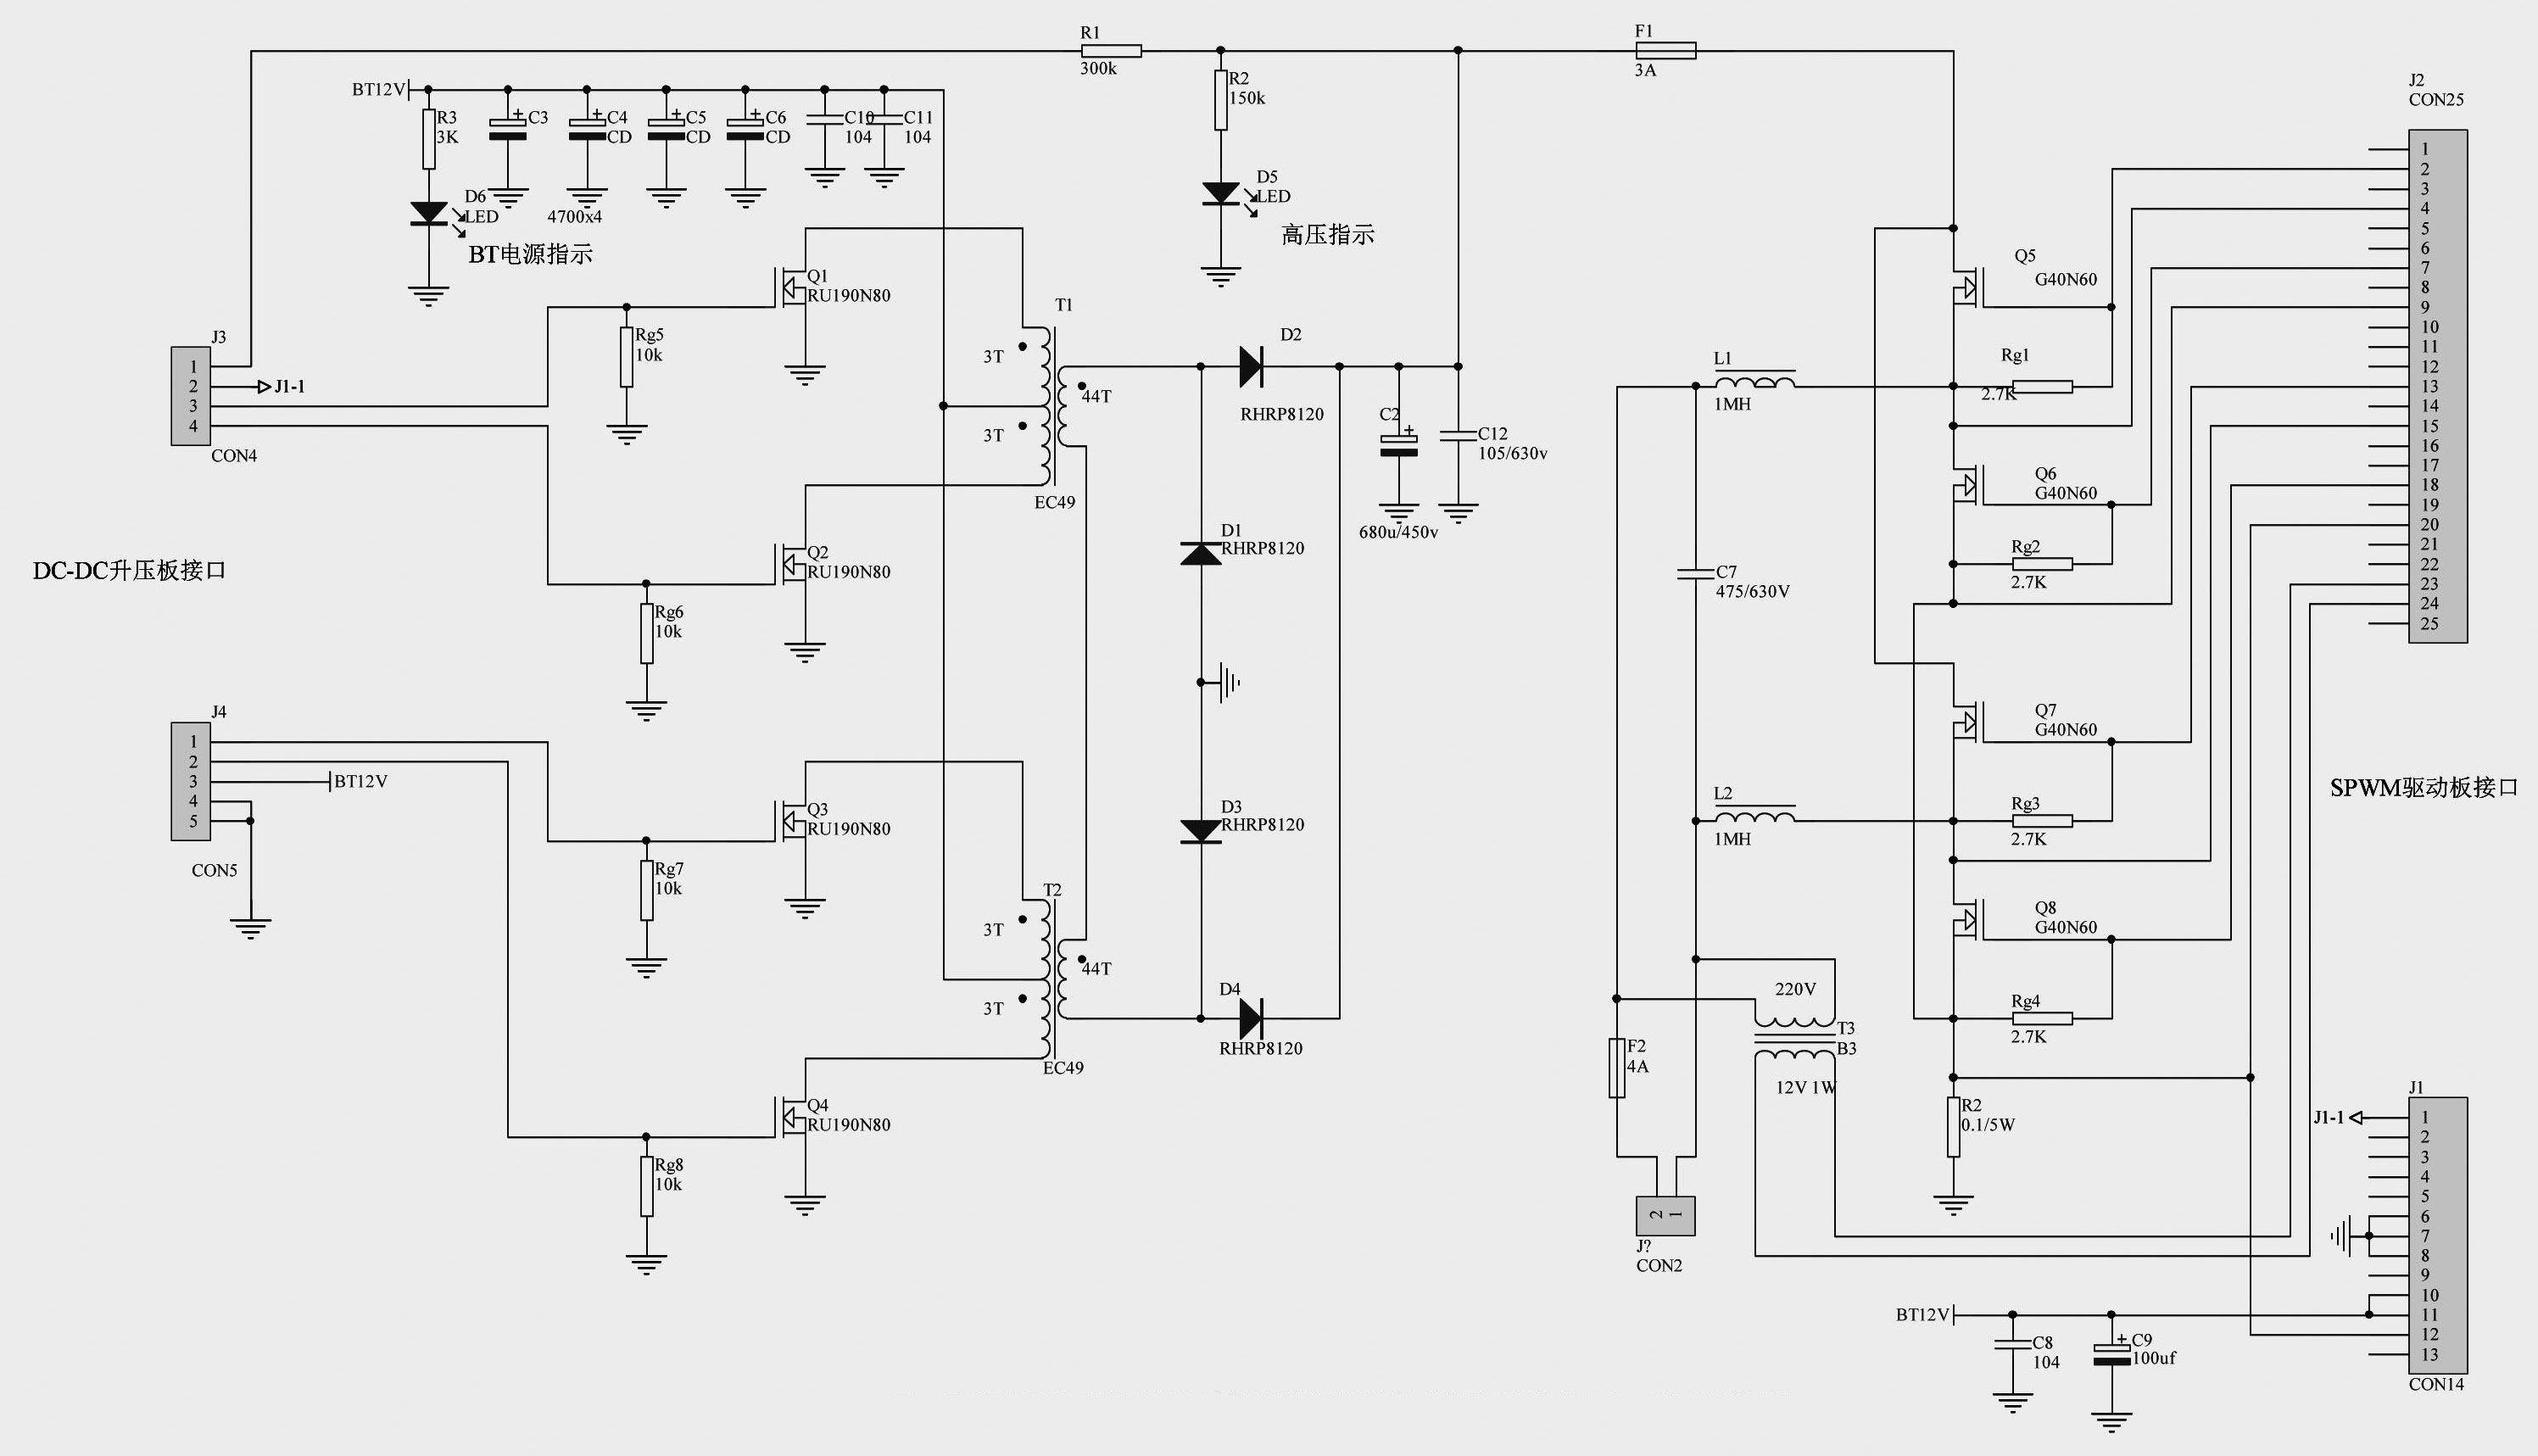 ac inverter wiring diagram wiring diagram12 volt 1000 watt power inverter design process gohz com ac inverter wiring diagram